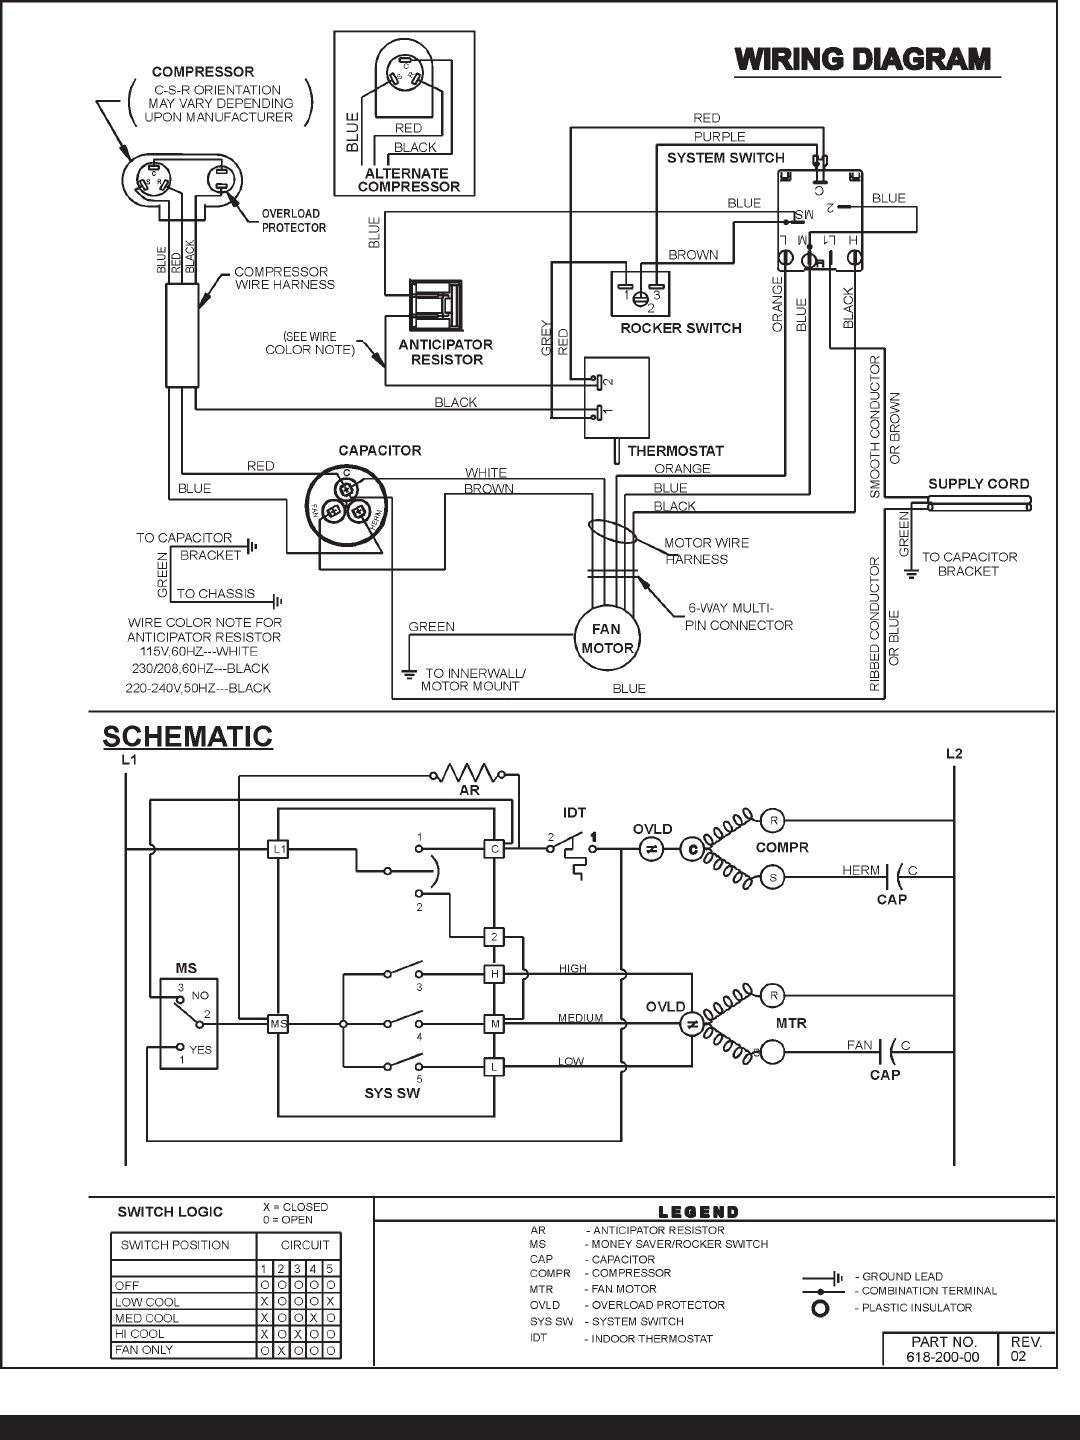 Friedrich Air Conditioner Kl25j30 Users Manual Rac K98 Wiring Diagrams Page 19